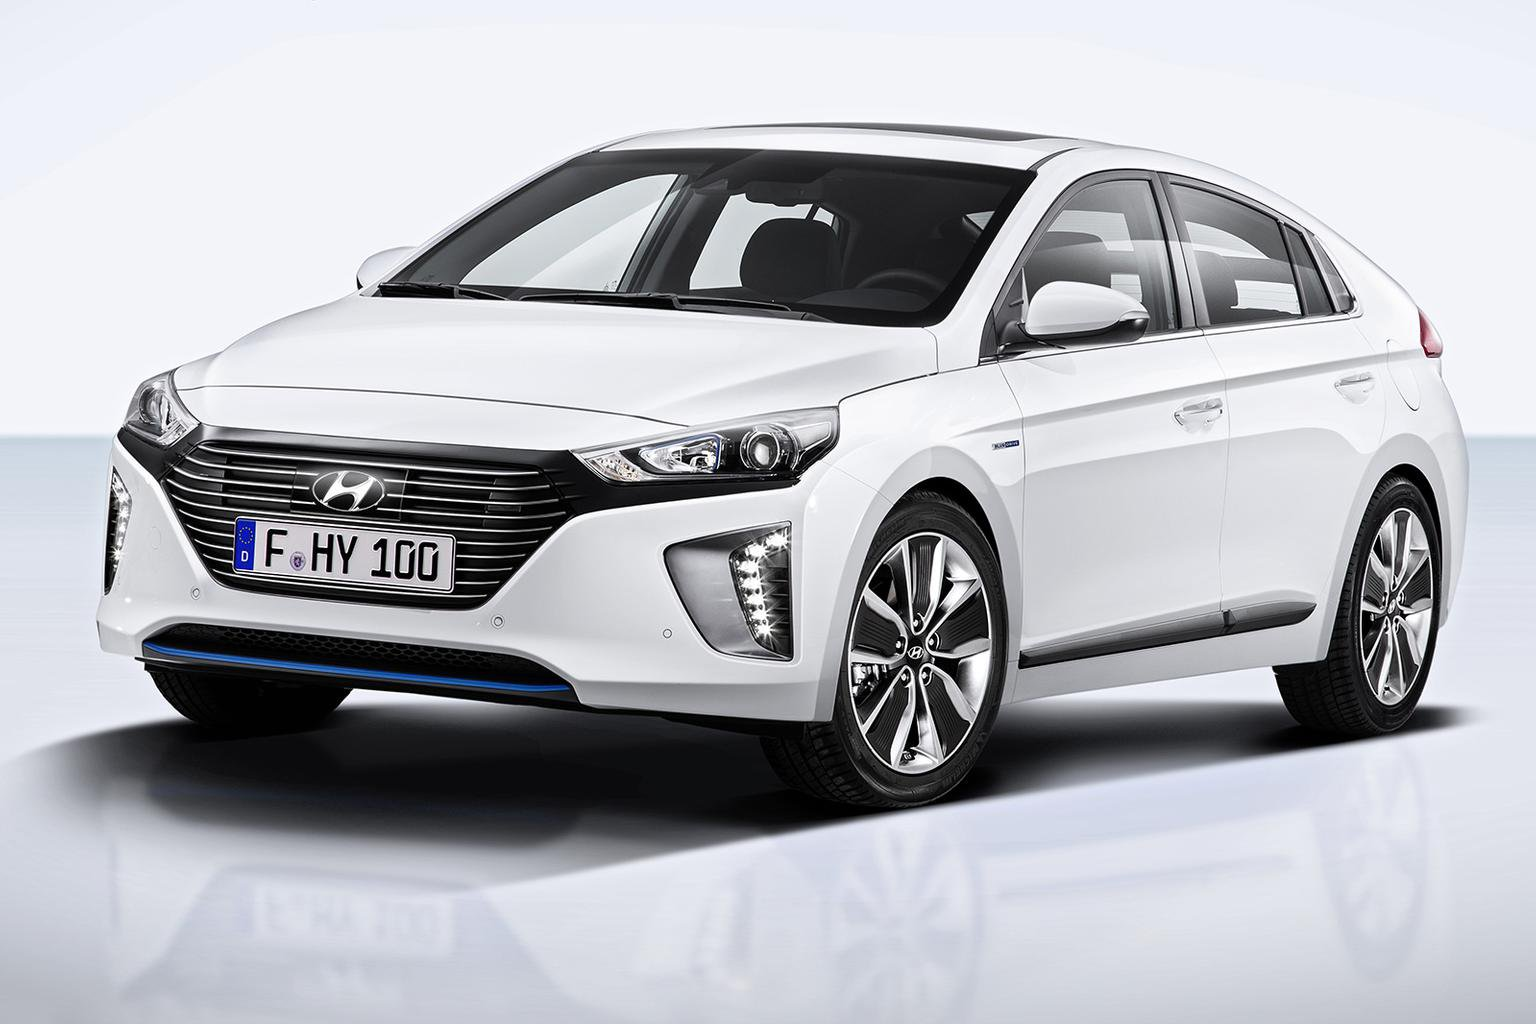 2016 Hyundai Ioniq - everything you need to know